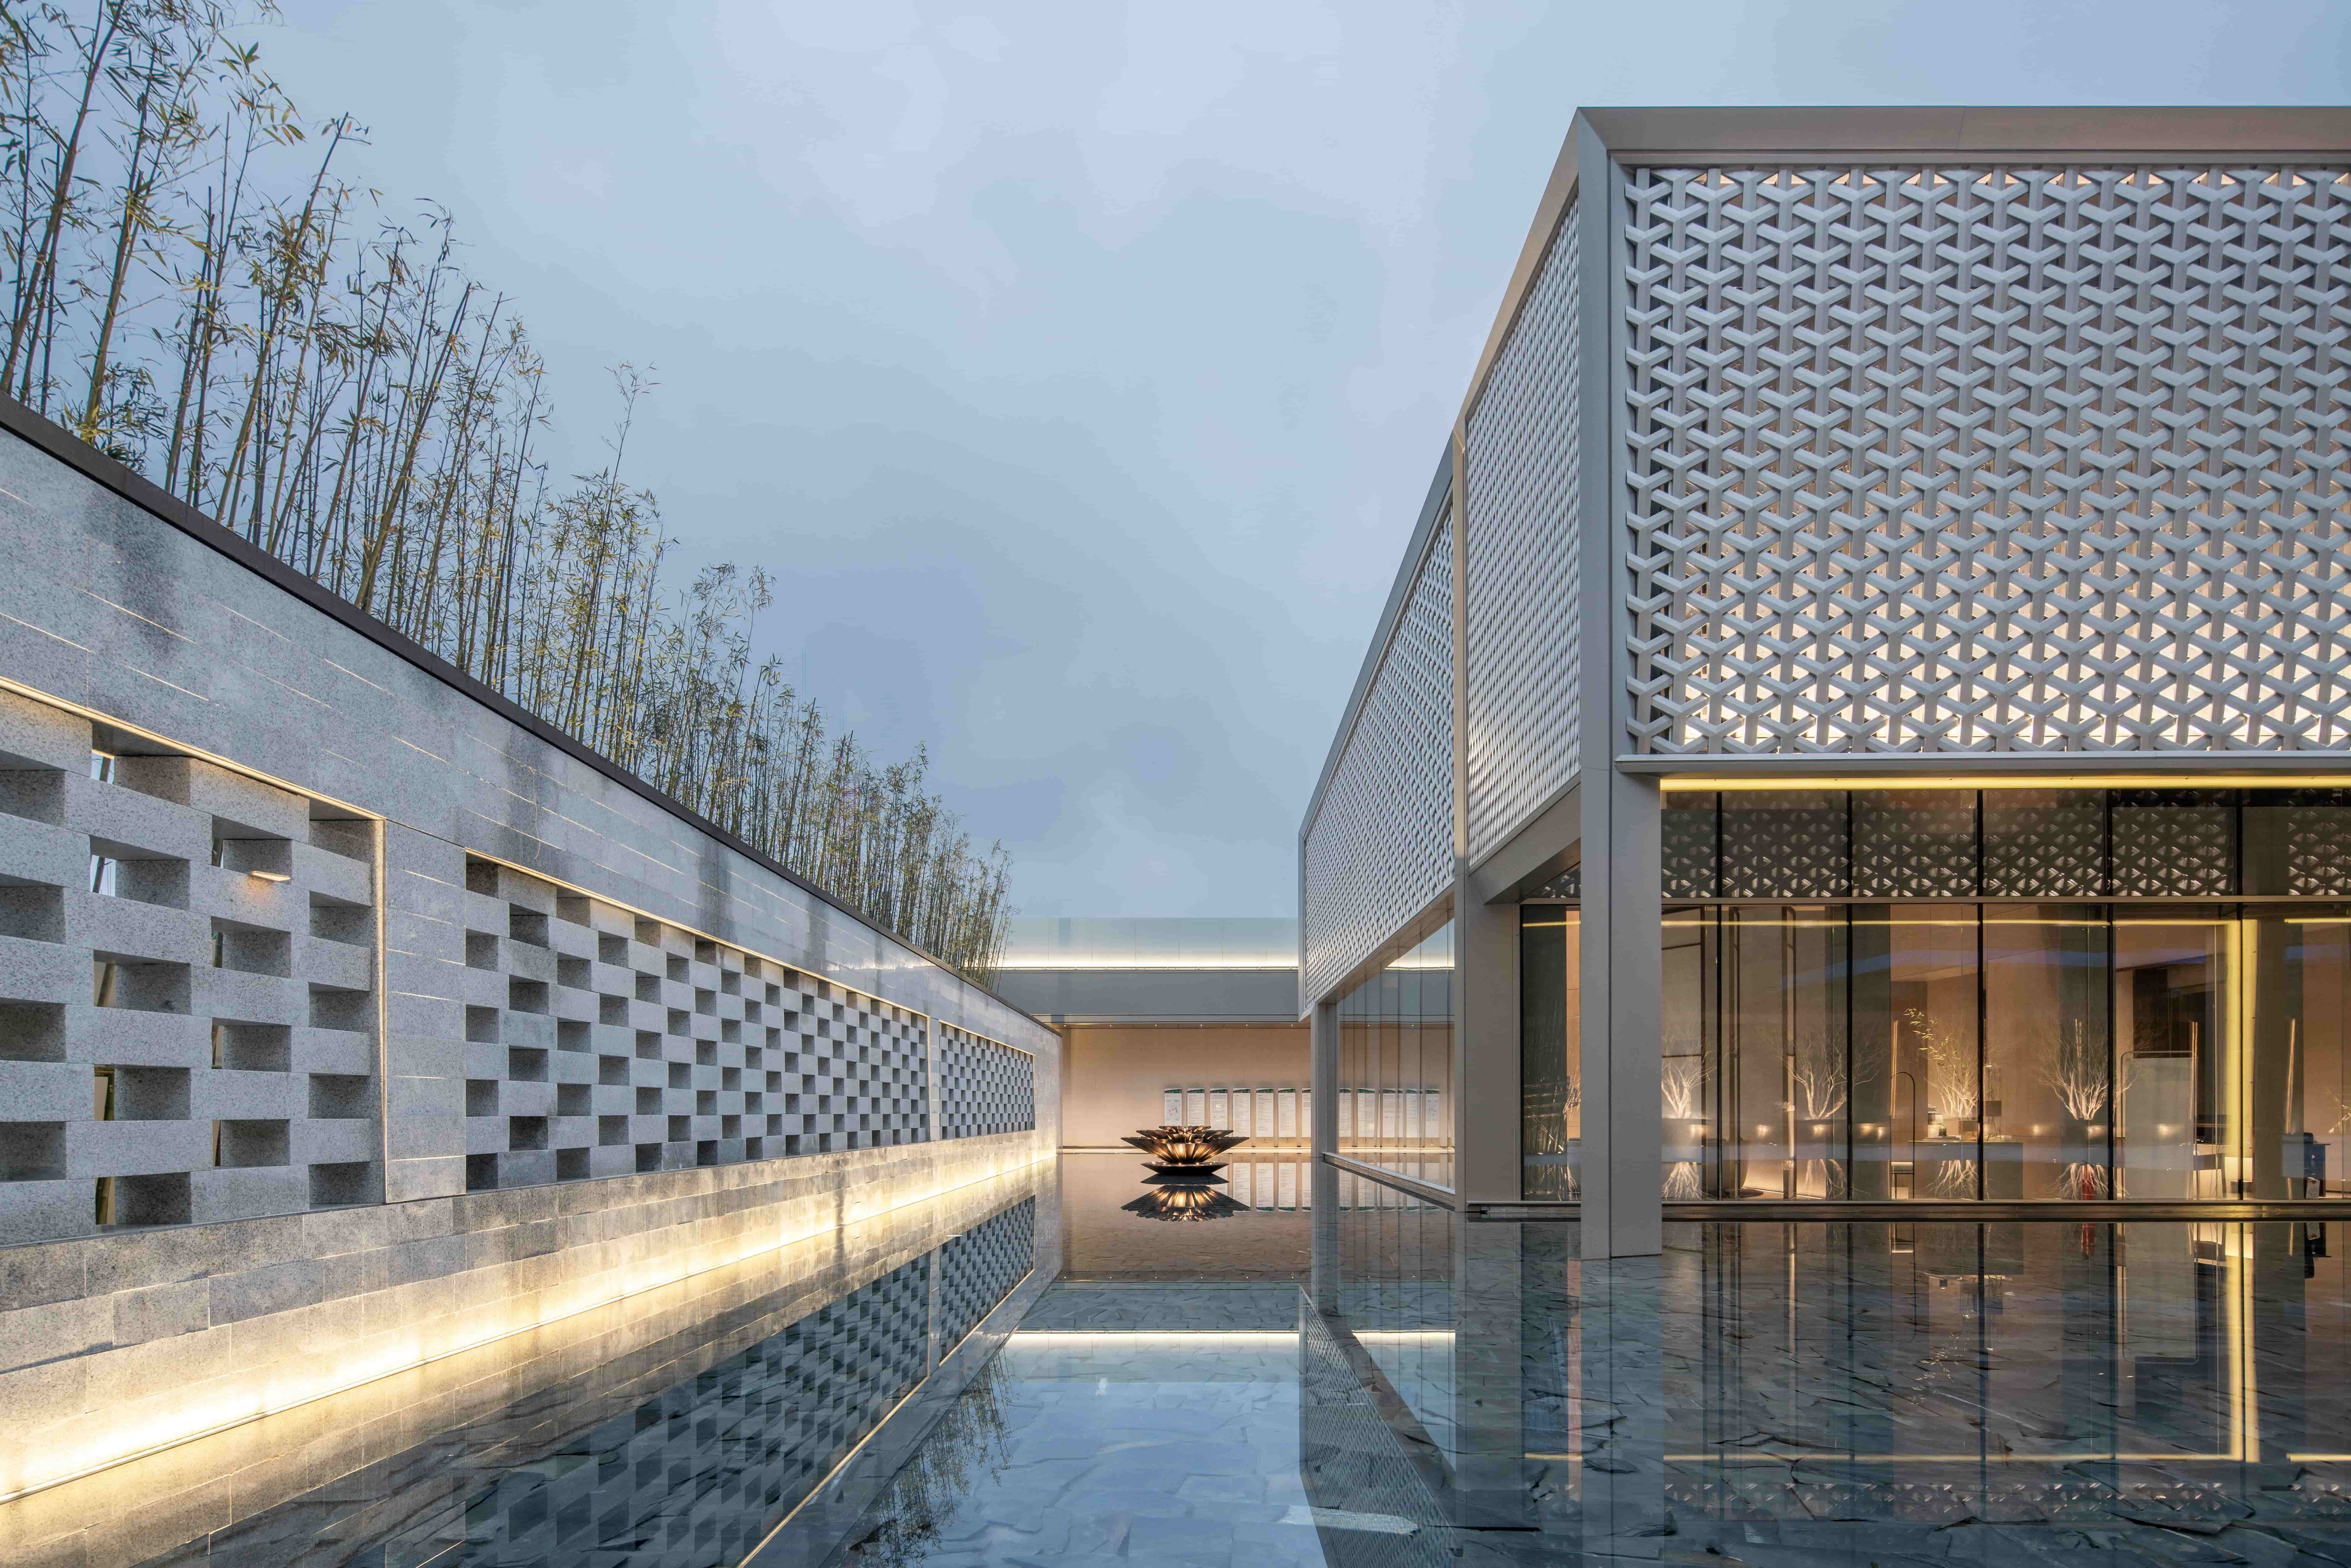 a-awards-2019-26-du-an-doat-giai-den-tu-trung-quoc-cuoc-cach-mang-architecture-china (18)